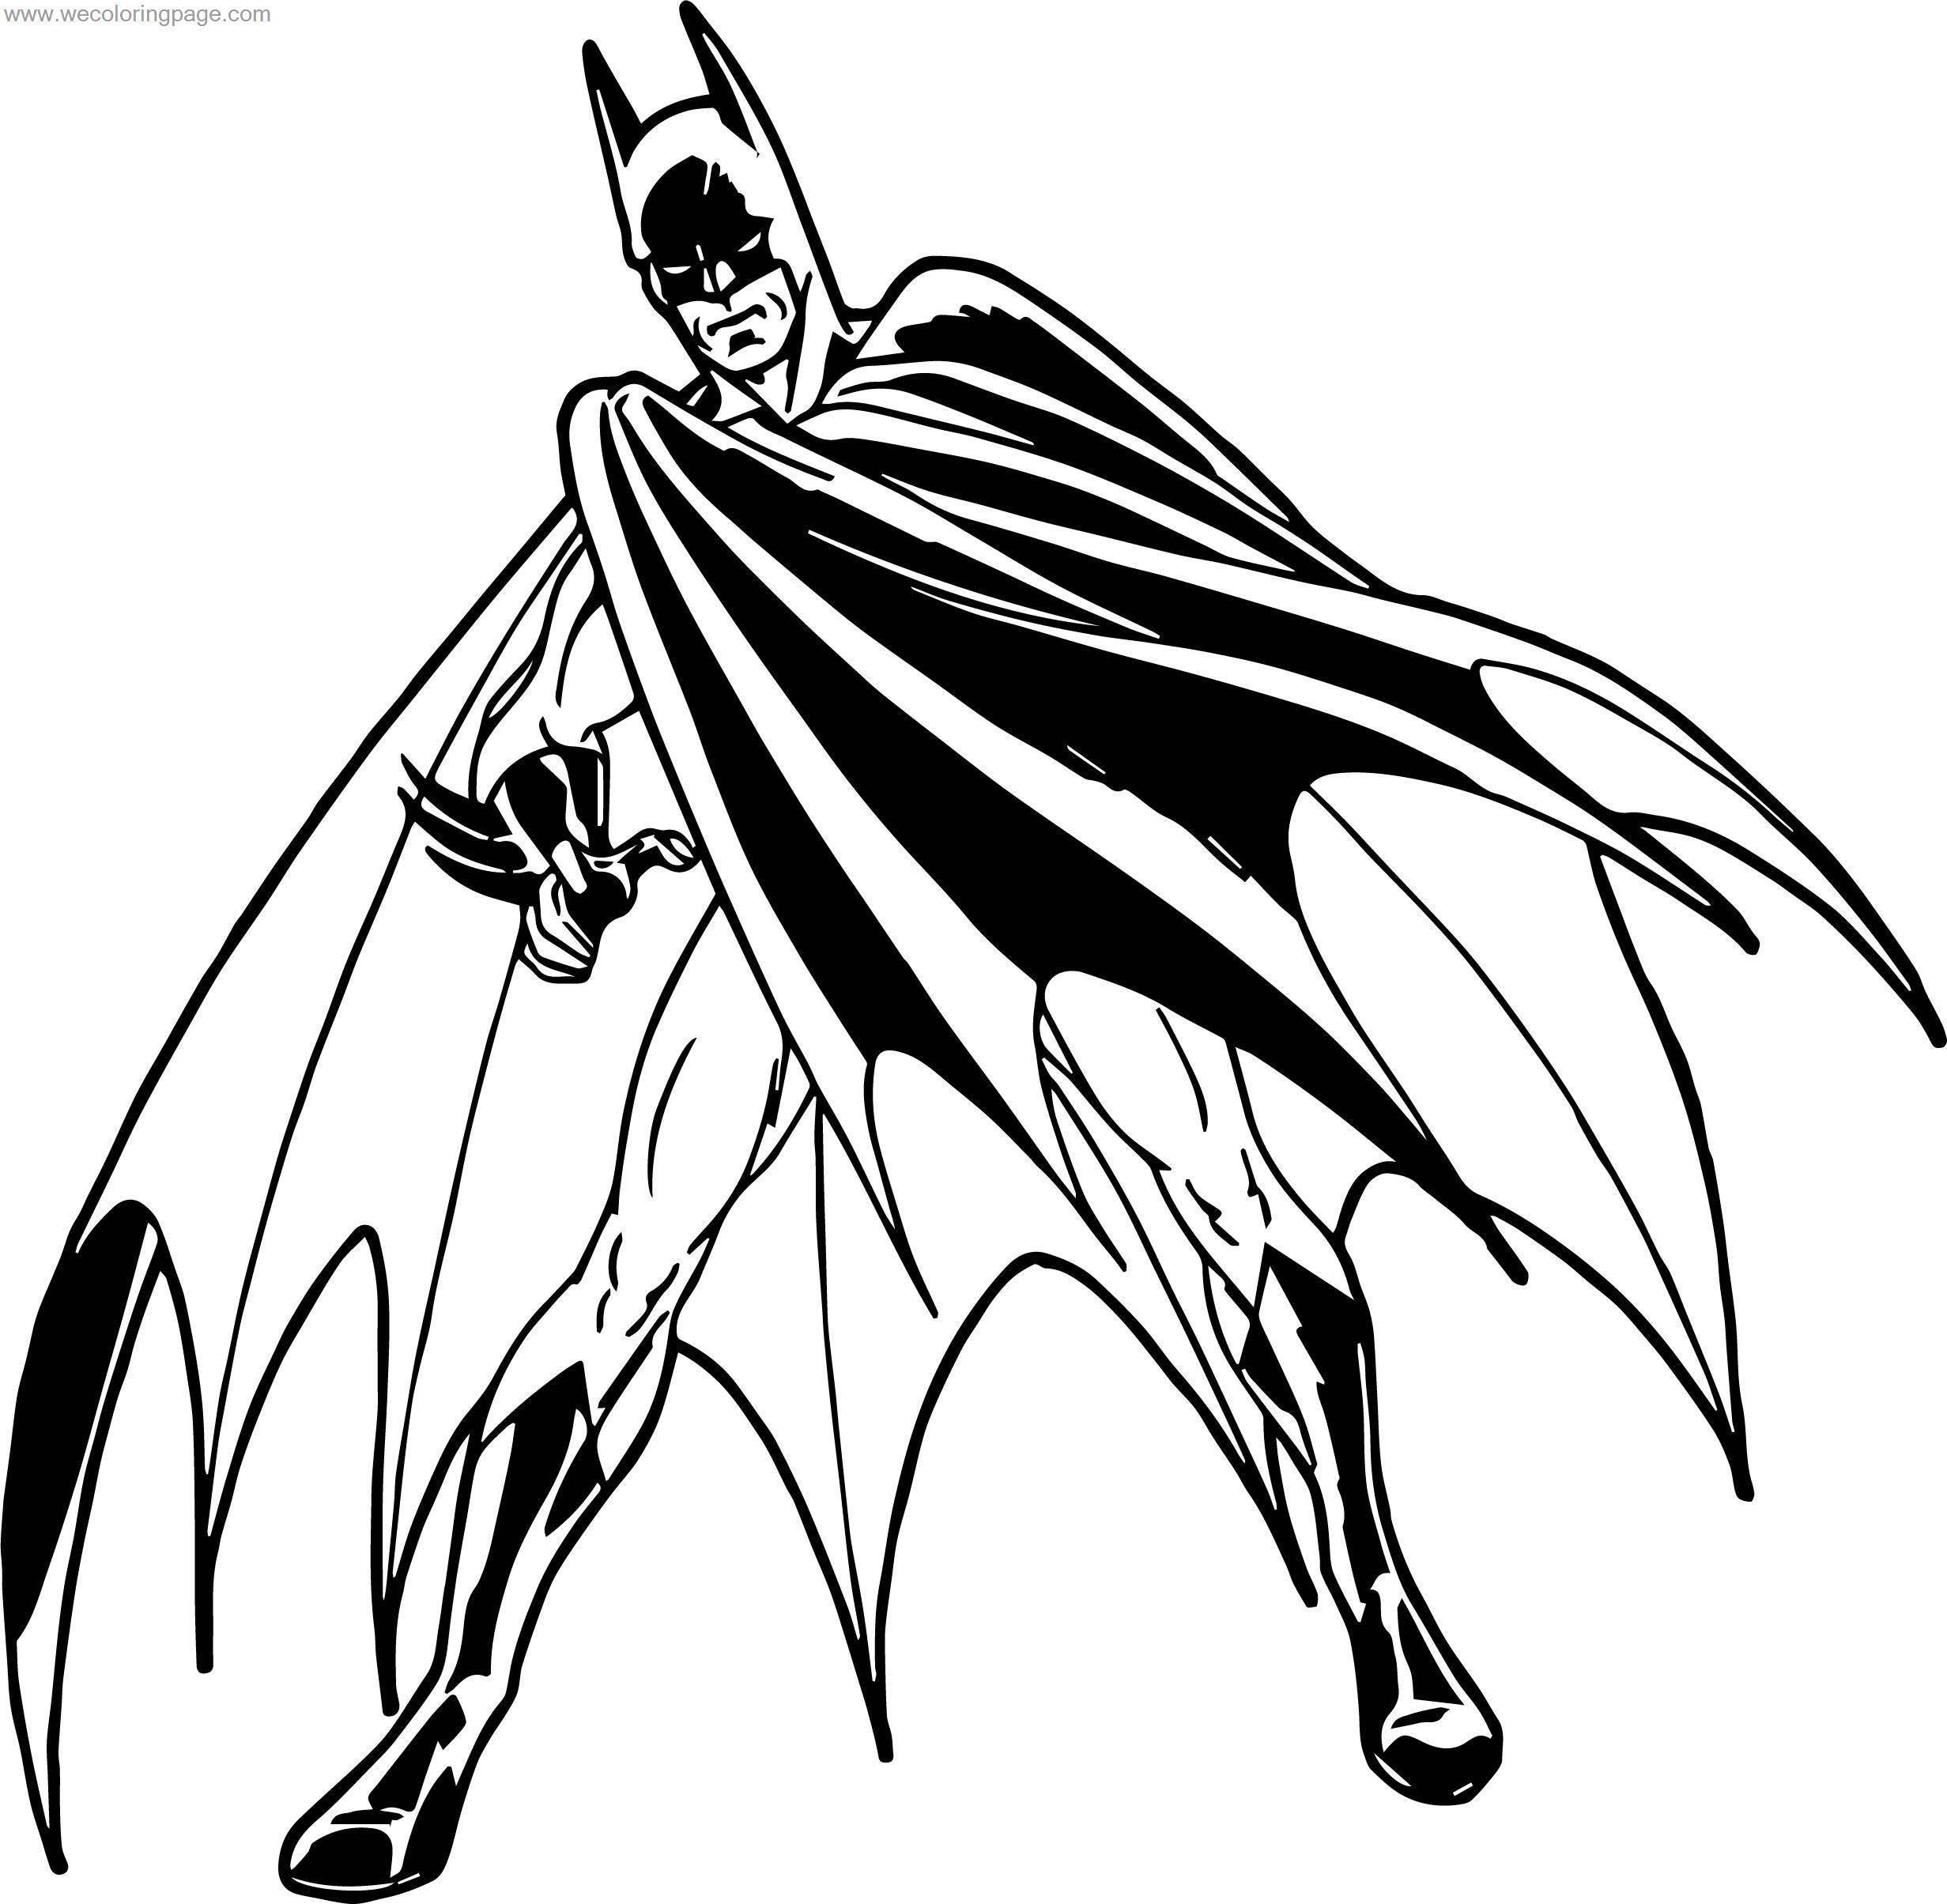 Your Batman Coloring Page